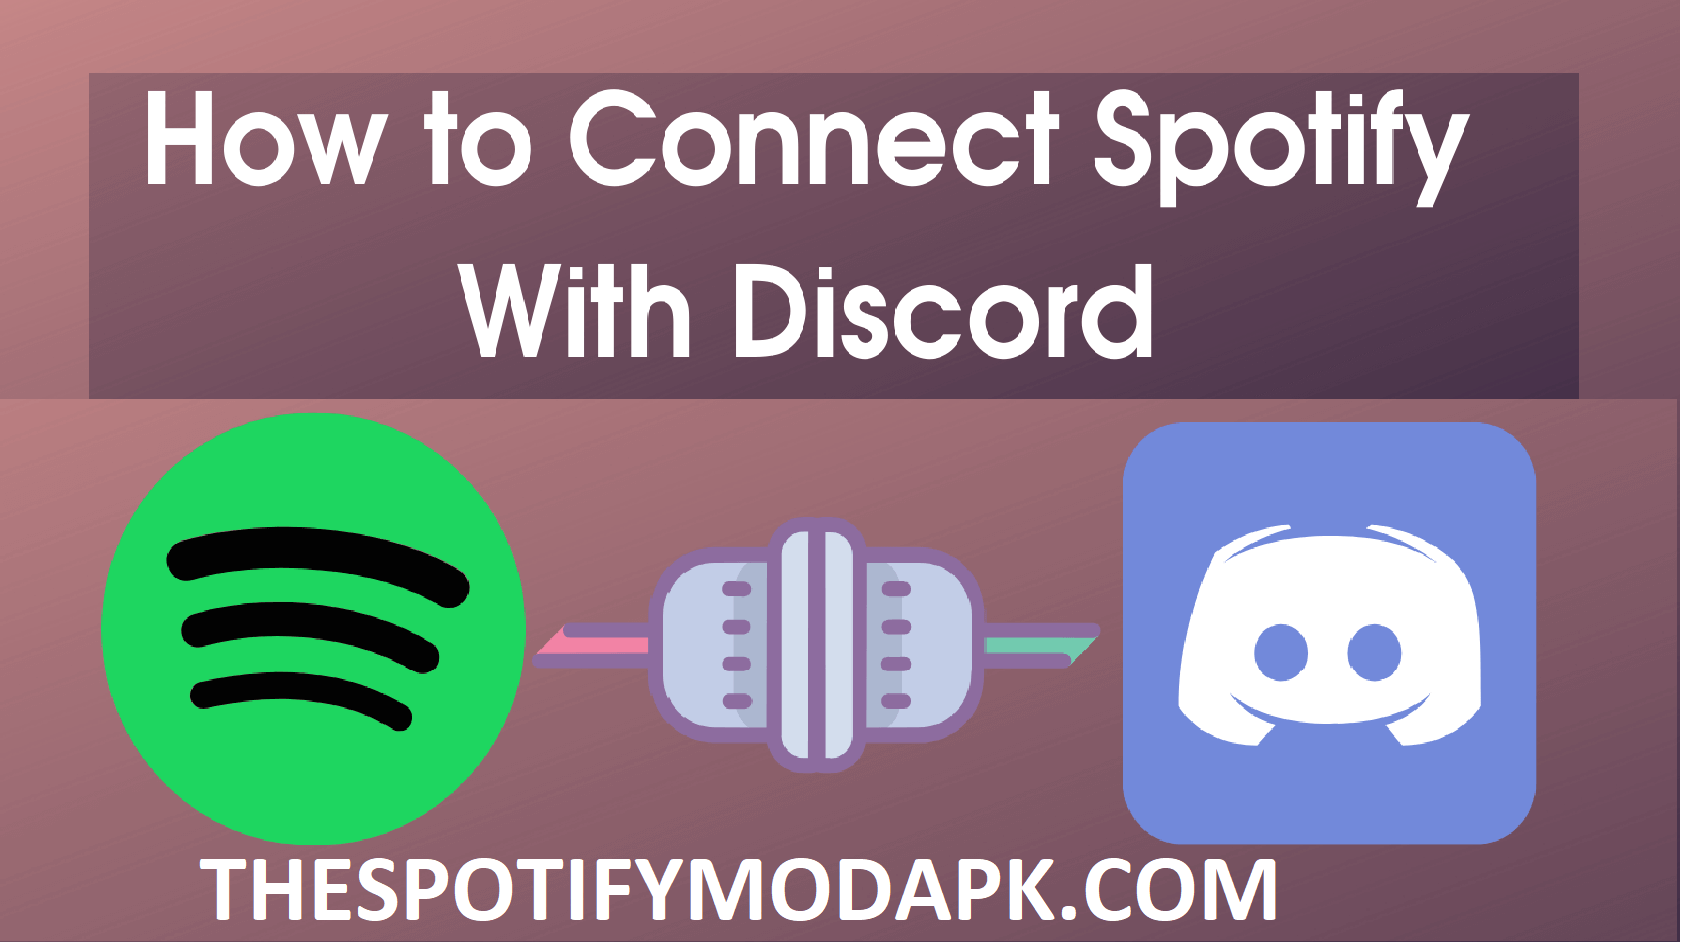 How to Connect Spotify Account to Discord - 2020 Easiest way